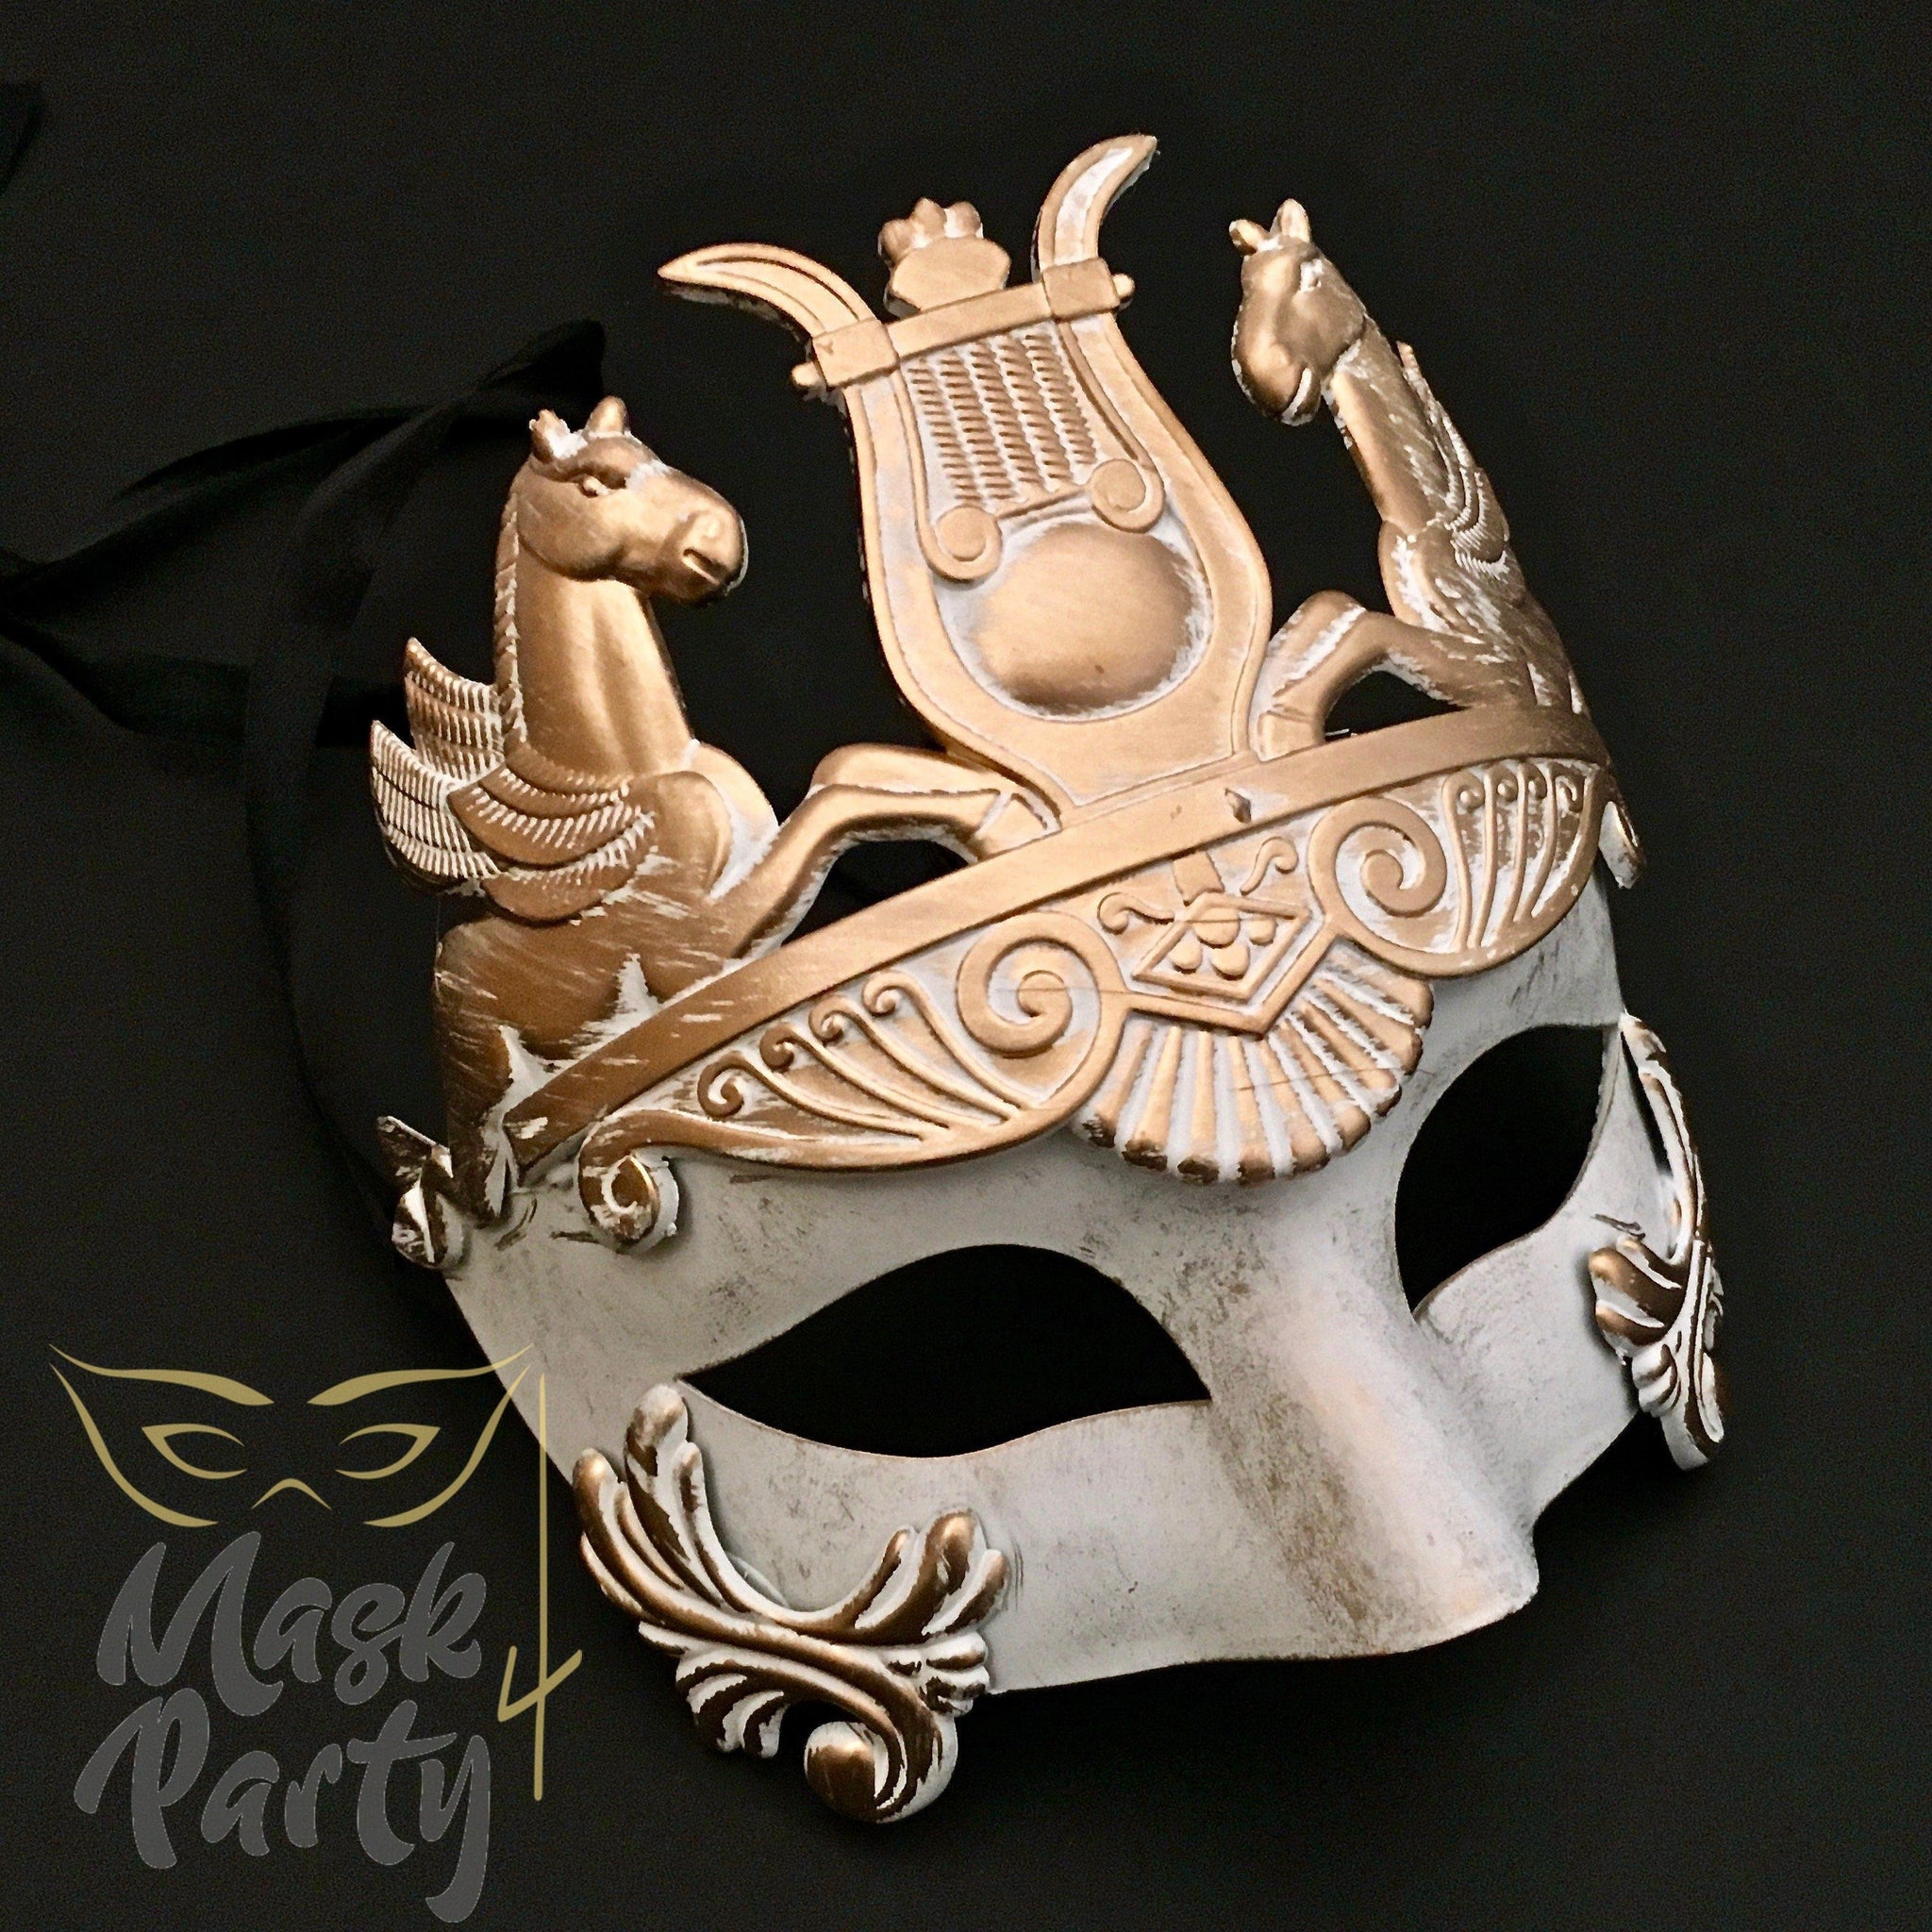 Masquerade Mask - Venetian Greek Mask - White/Gold - Mask4Party